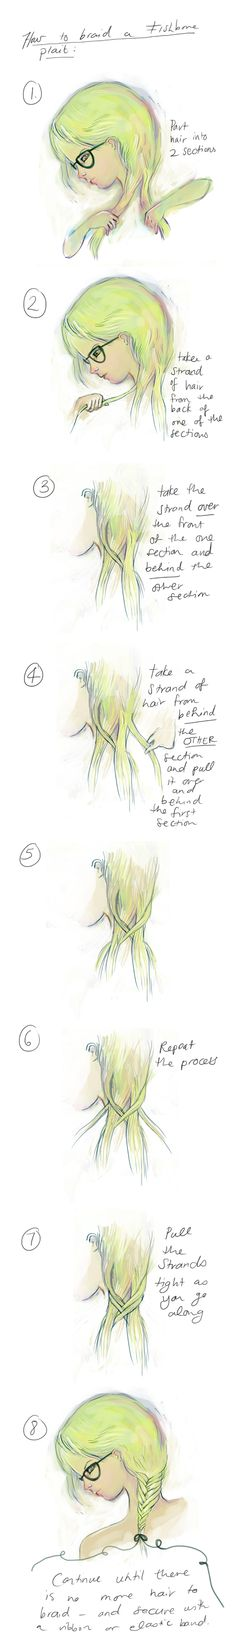 How to braid your hair into a fish bone plait, illustration step by step